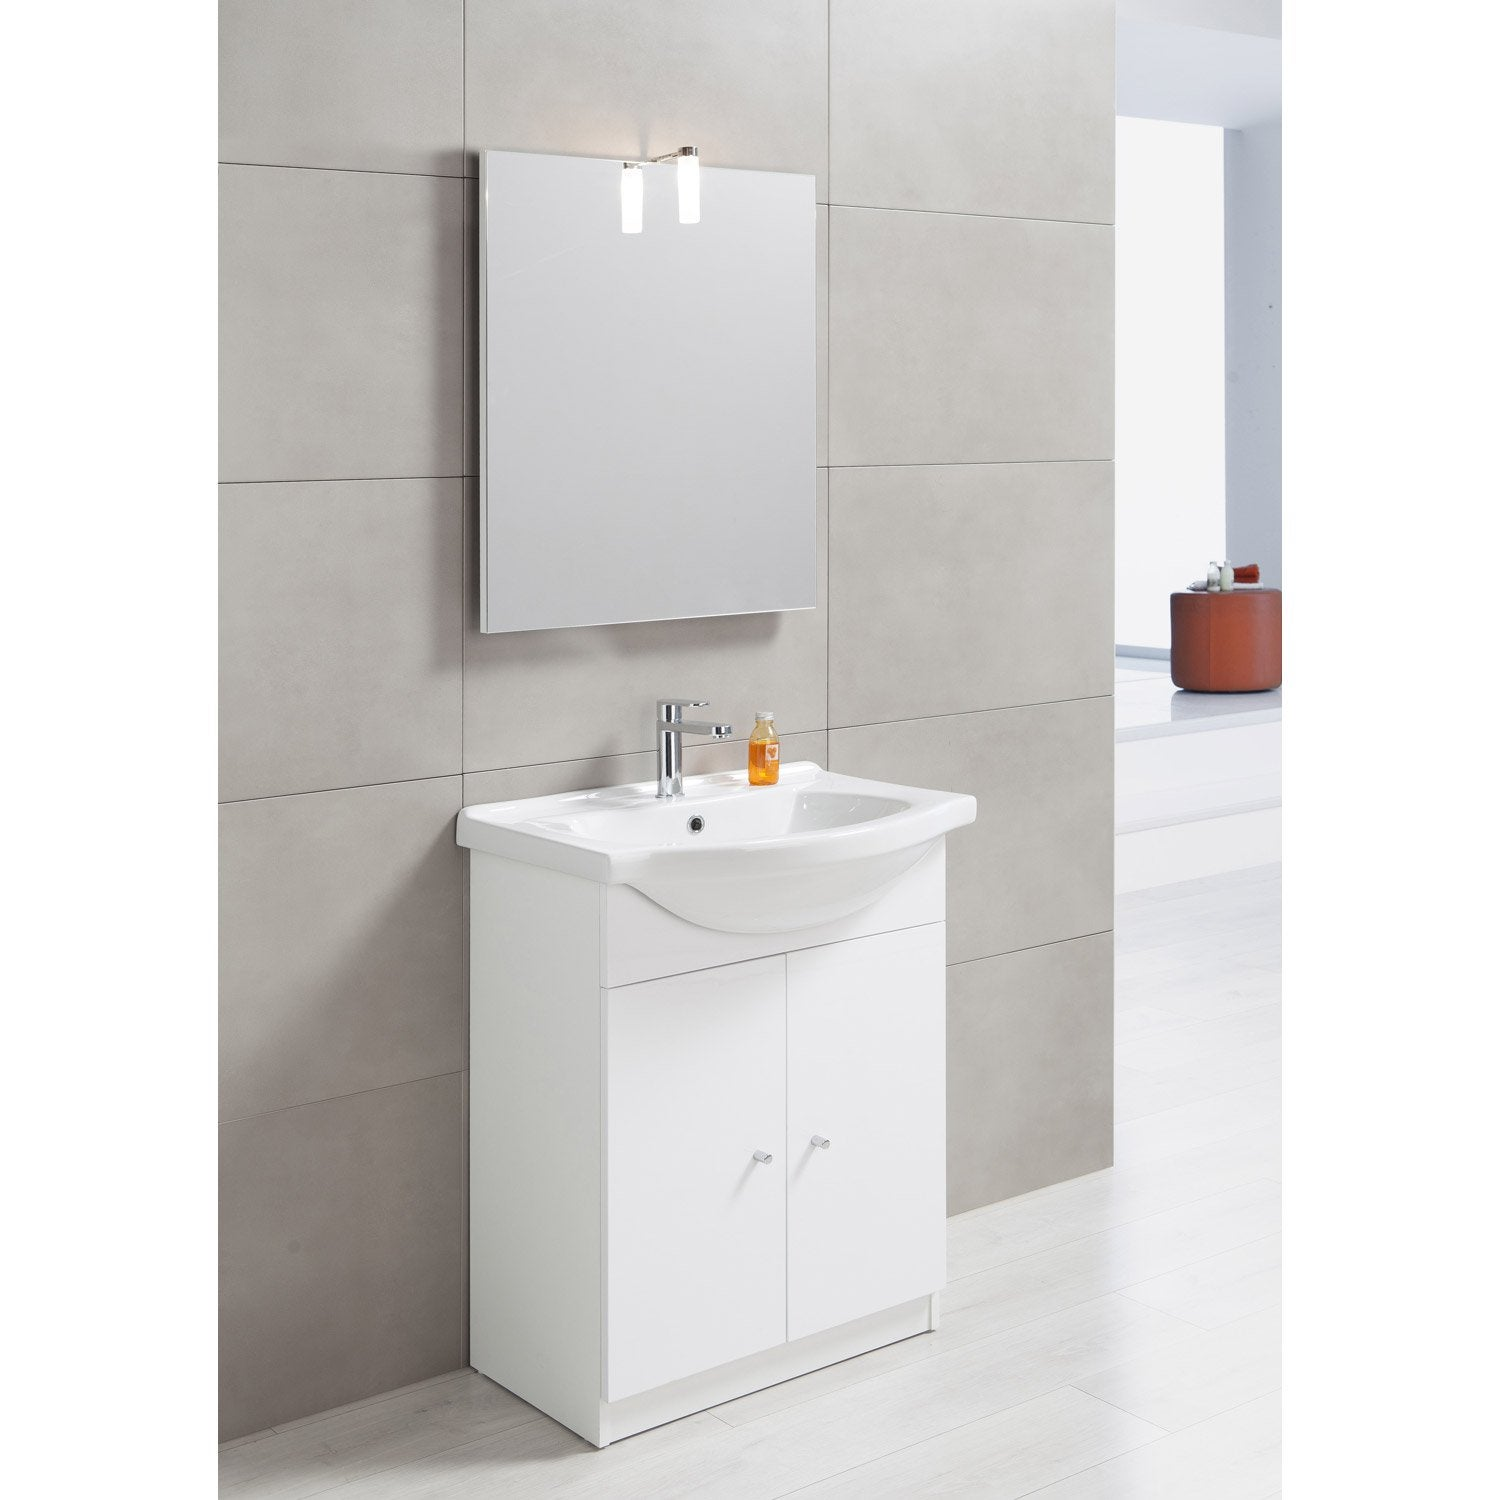 Meuble vasque 65 cm bianca leroy merlin - Meuble toilette leroy merlin ...